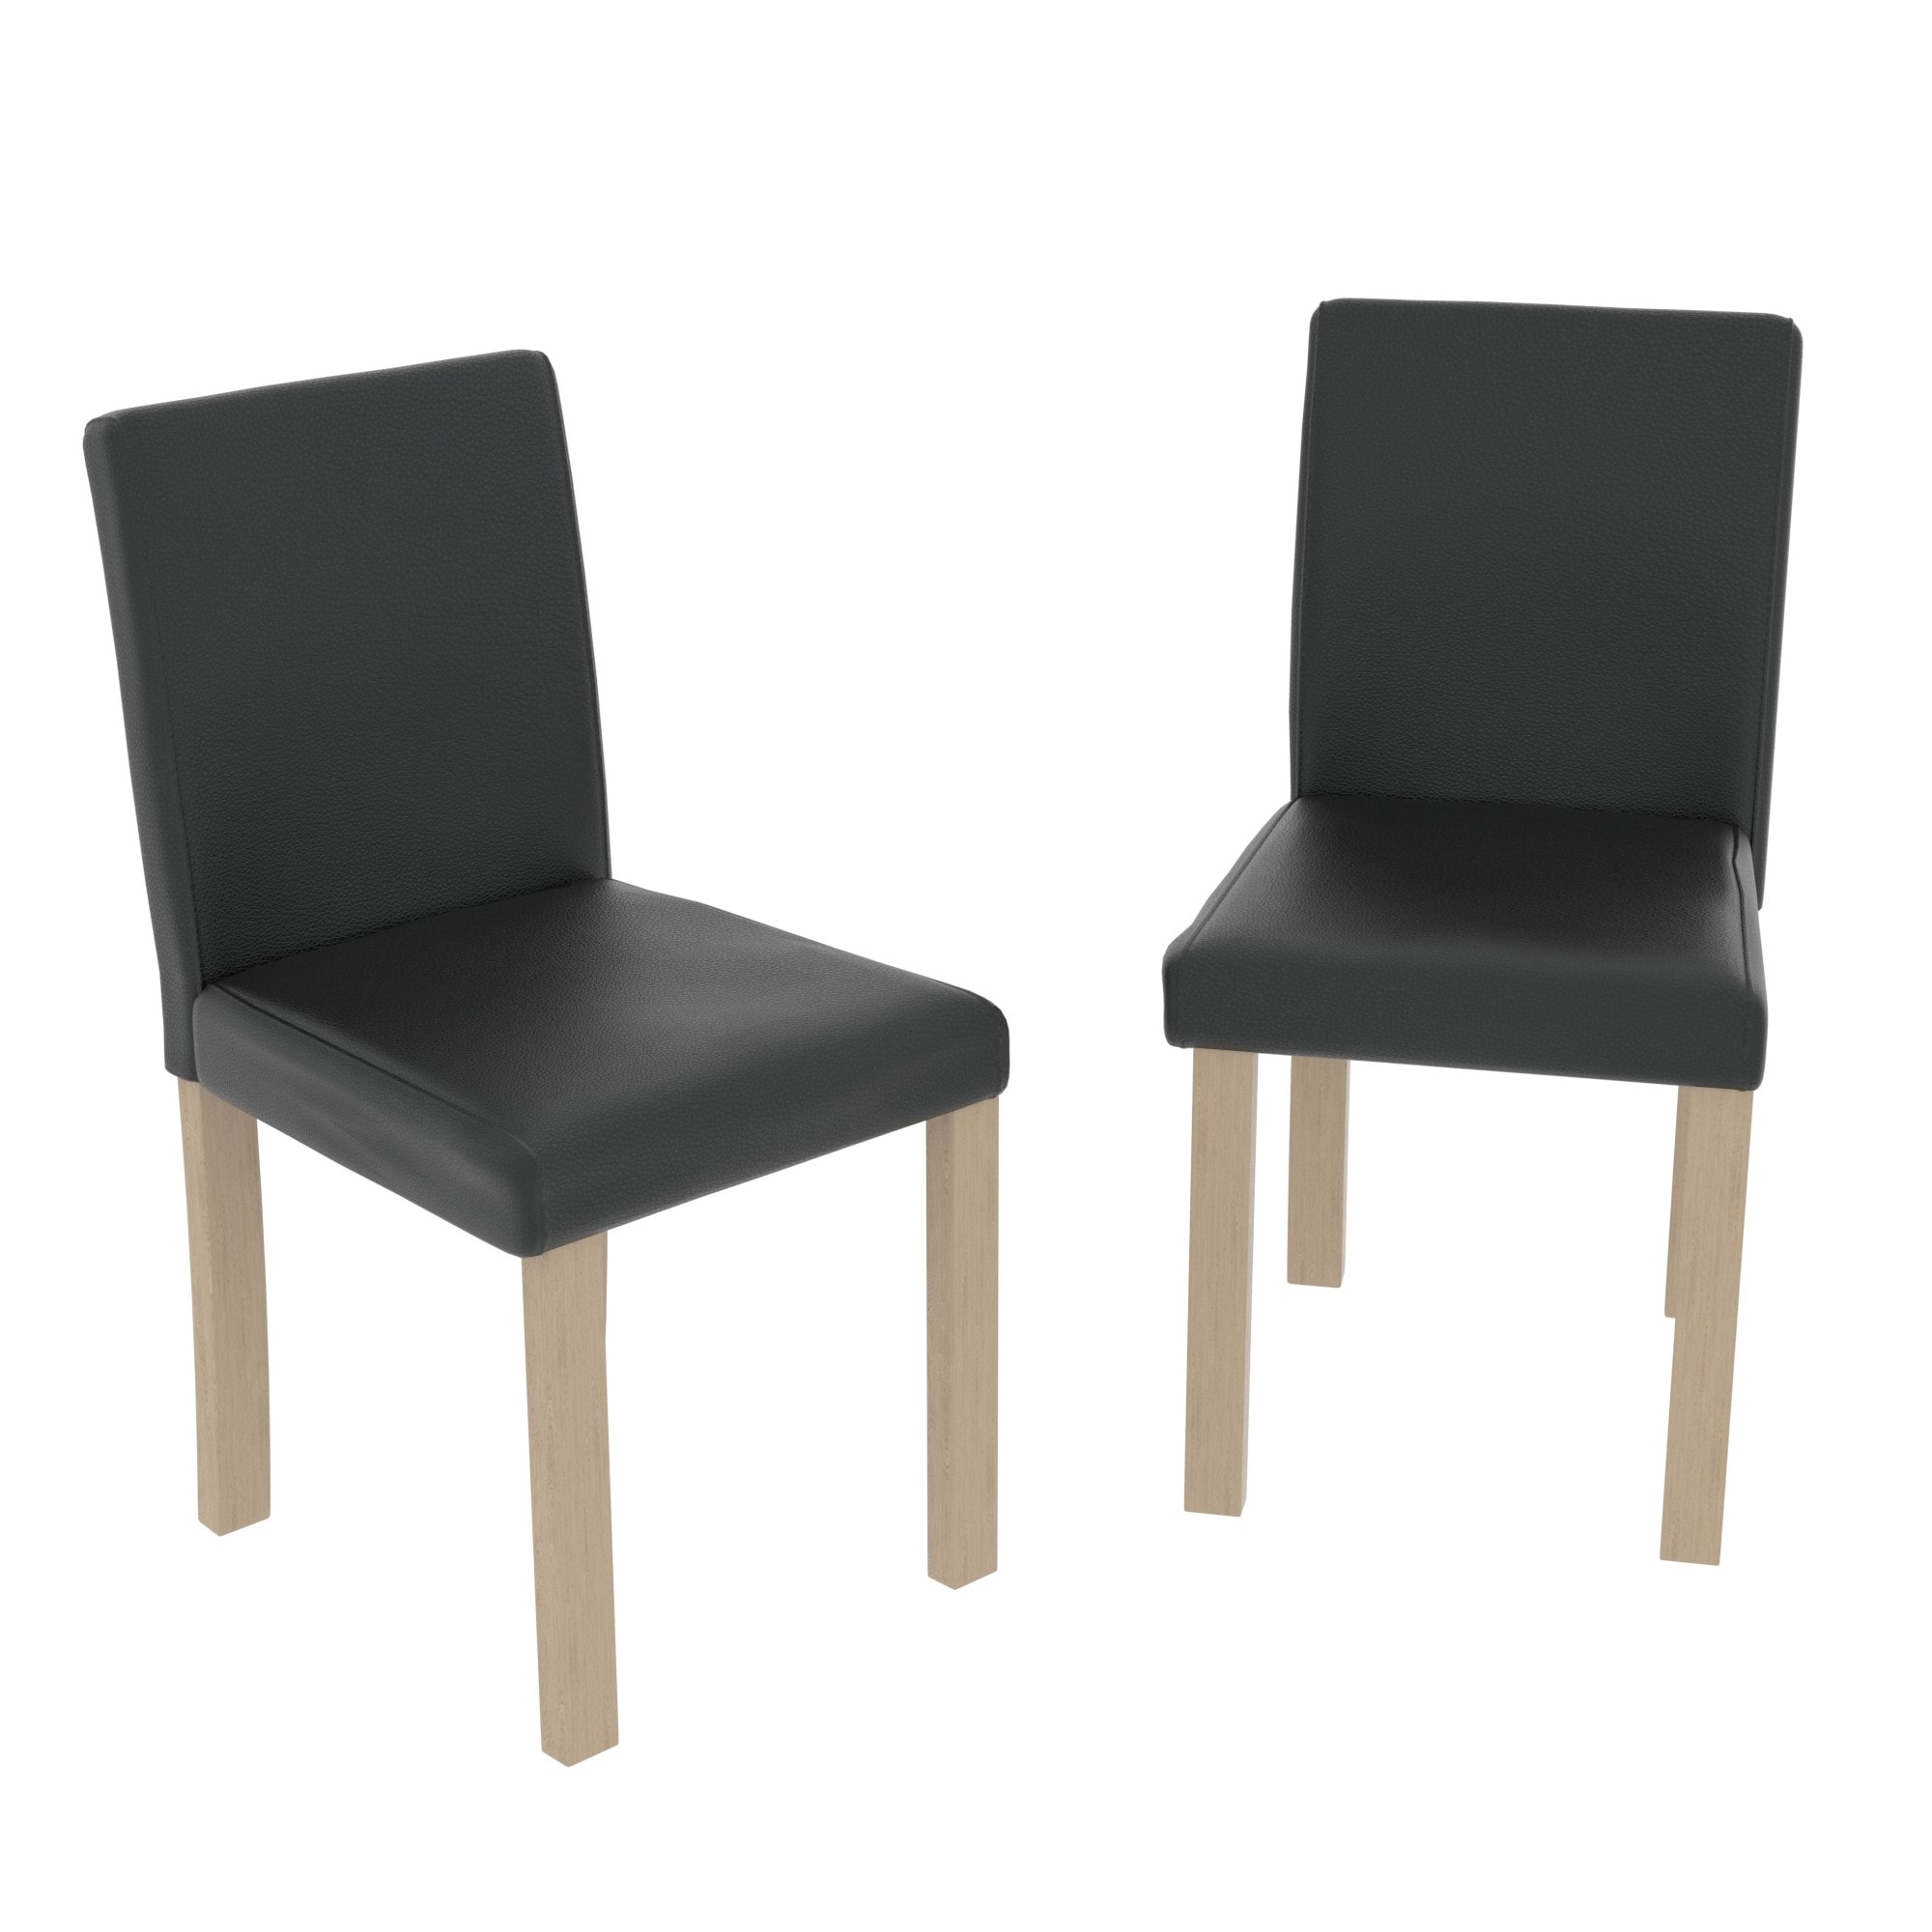 Excellent Canterbury Set Of 2 Dining Chairs Black Oak Andrewgaddart Wooden Chair Designs For Living Room Andrewgaddartcom